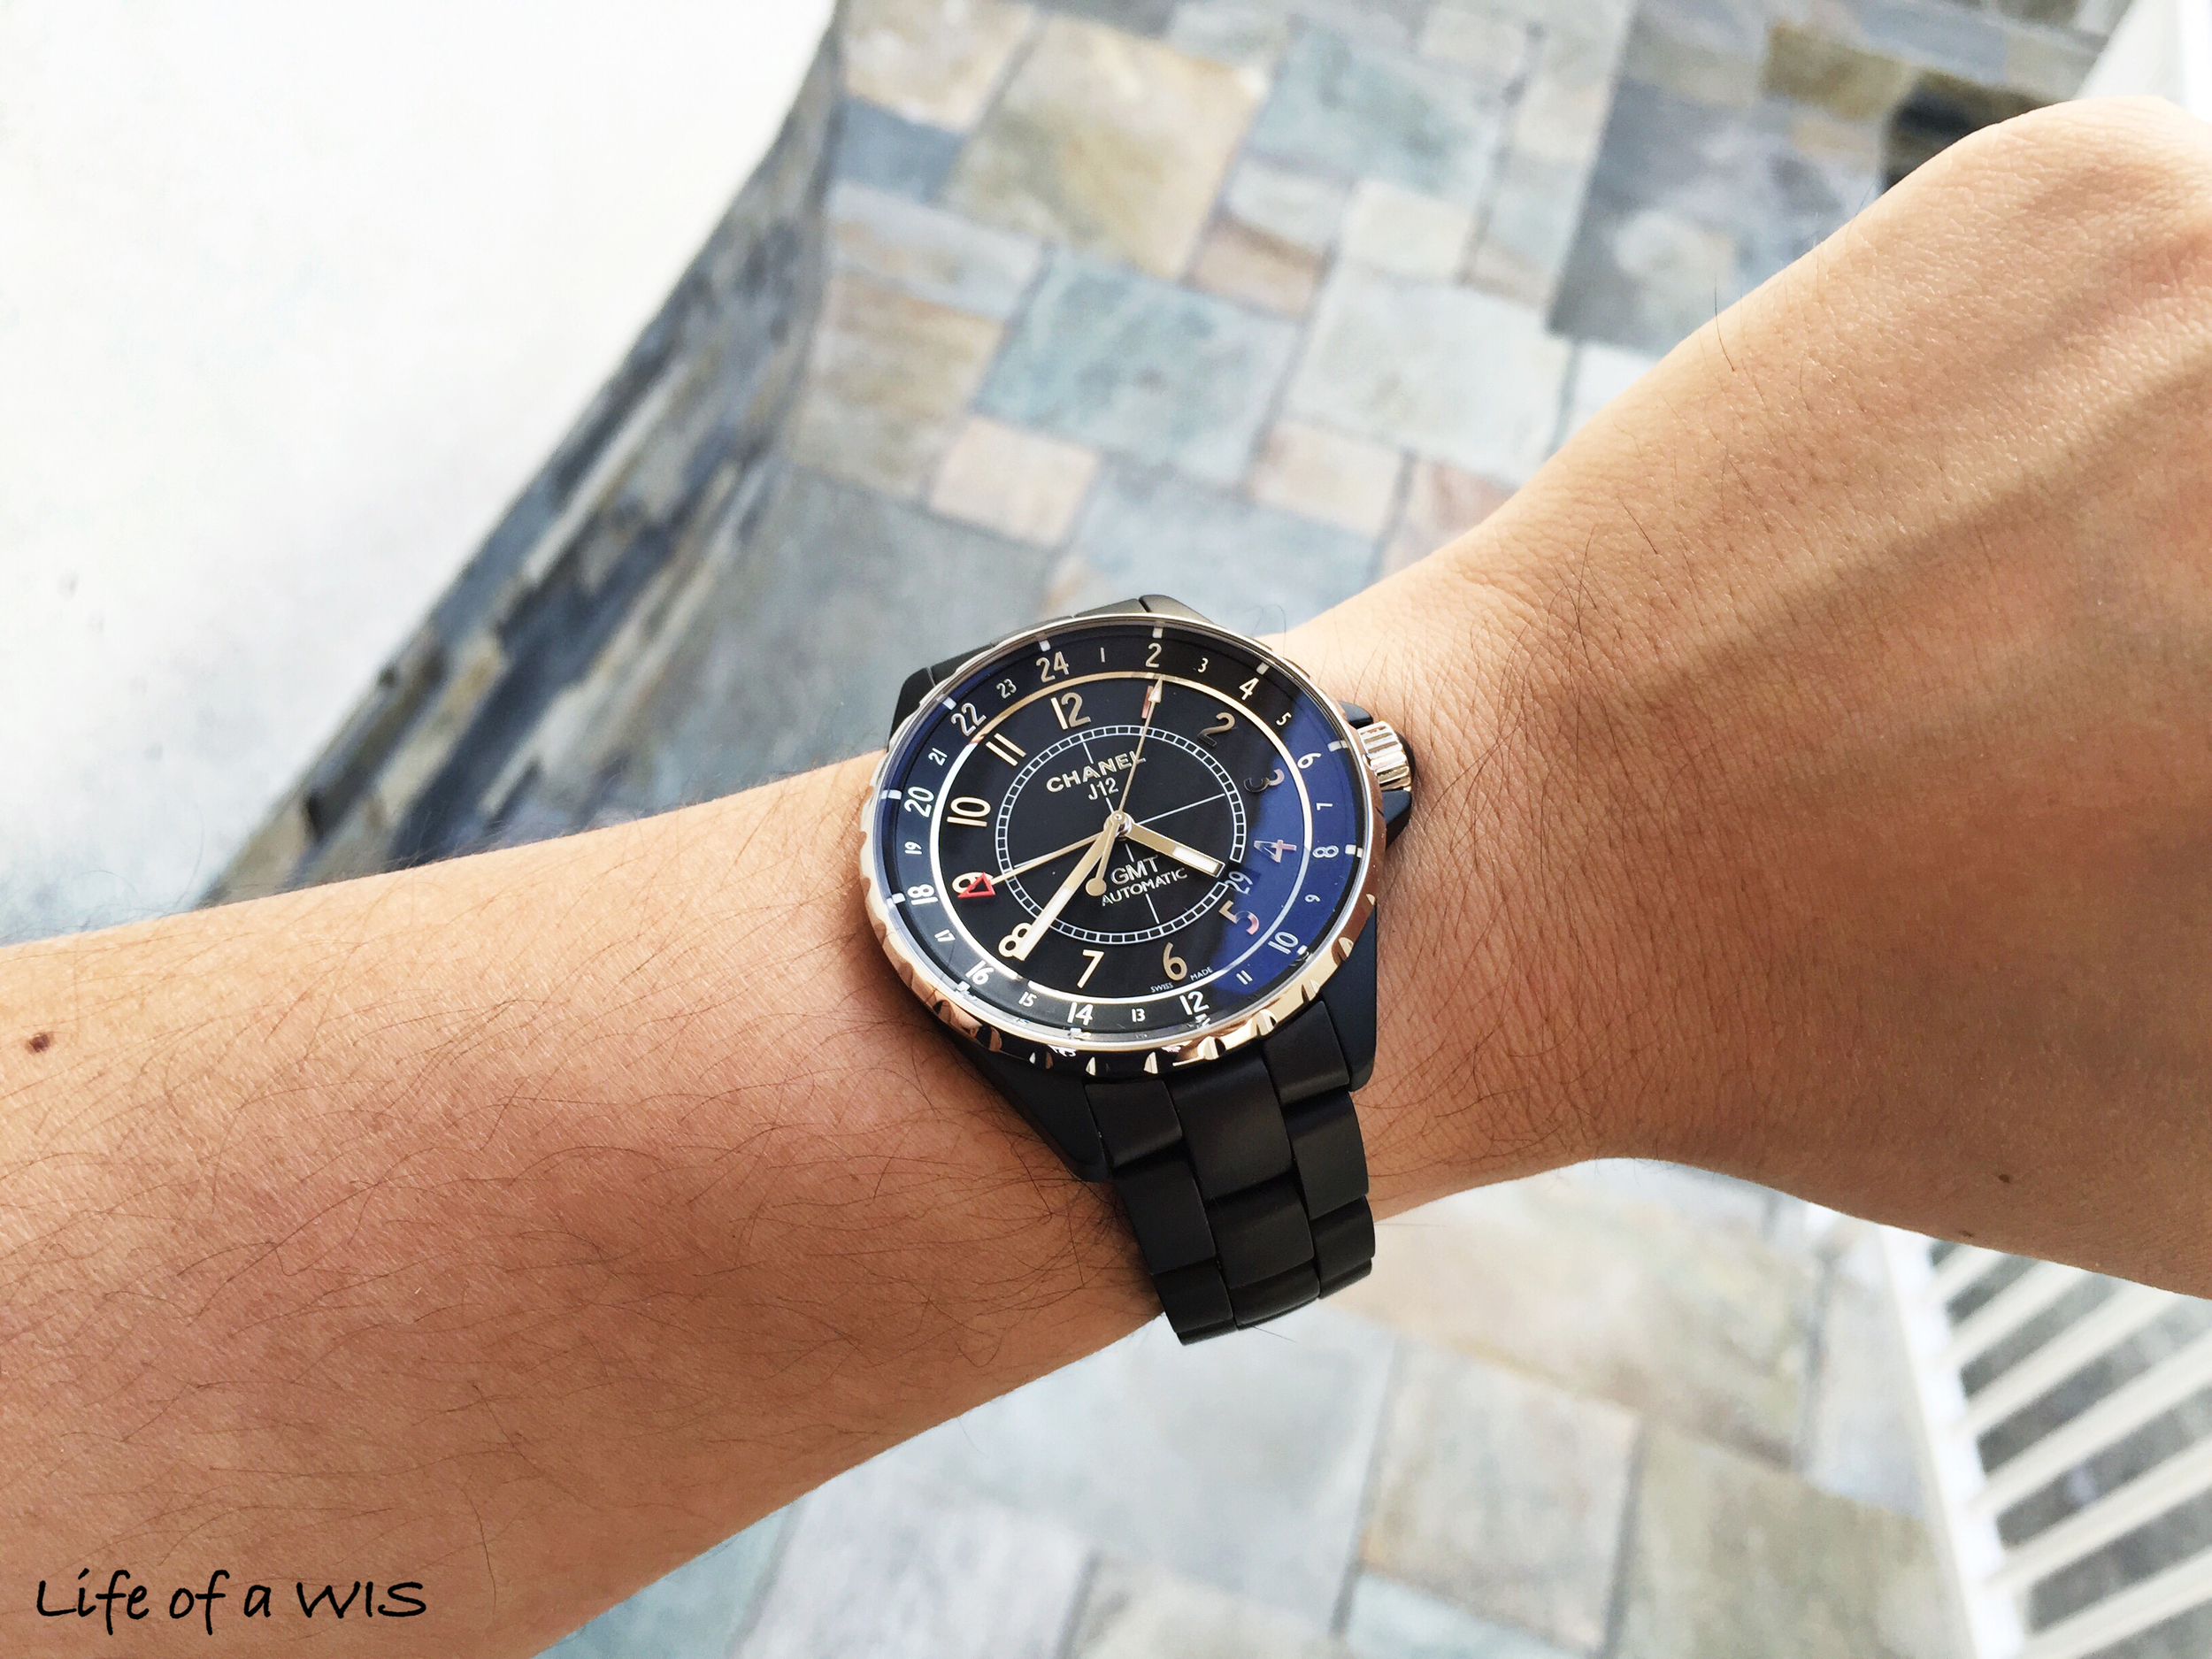 If you want a black watch, ceramic is the way to go.